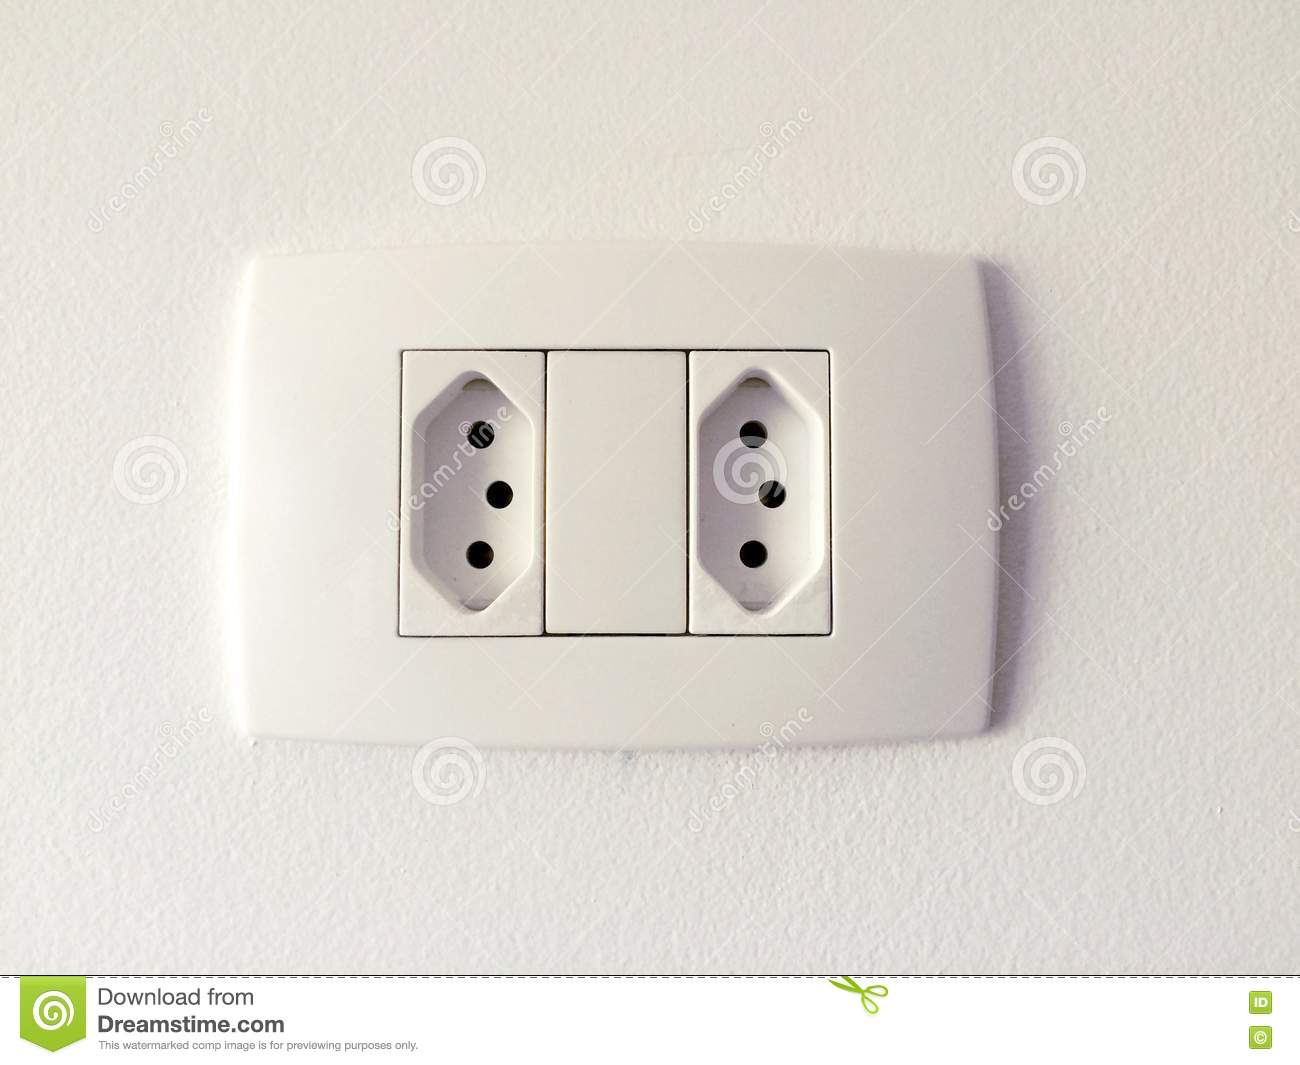 Double Electrical Outlet Stock Photo - Image: 74987957